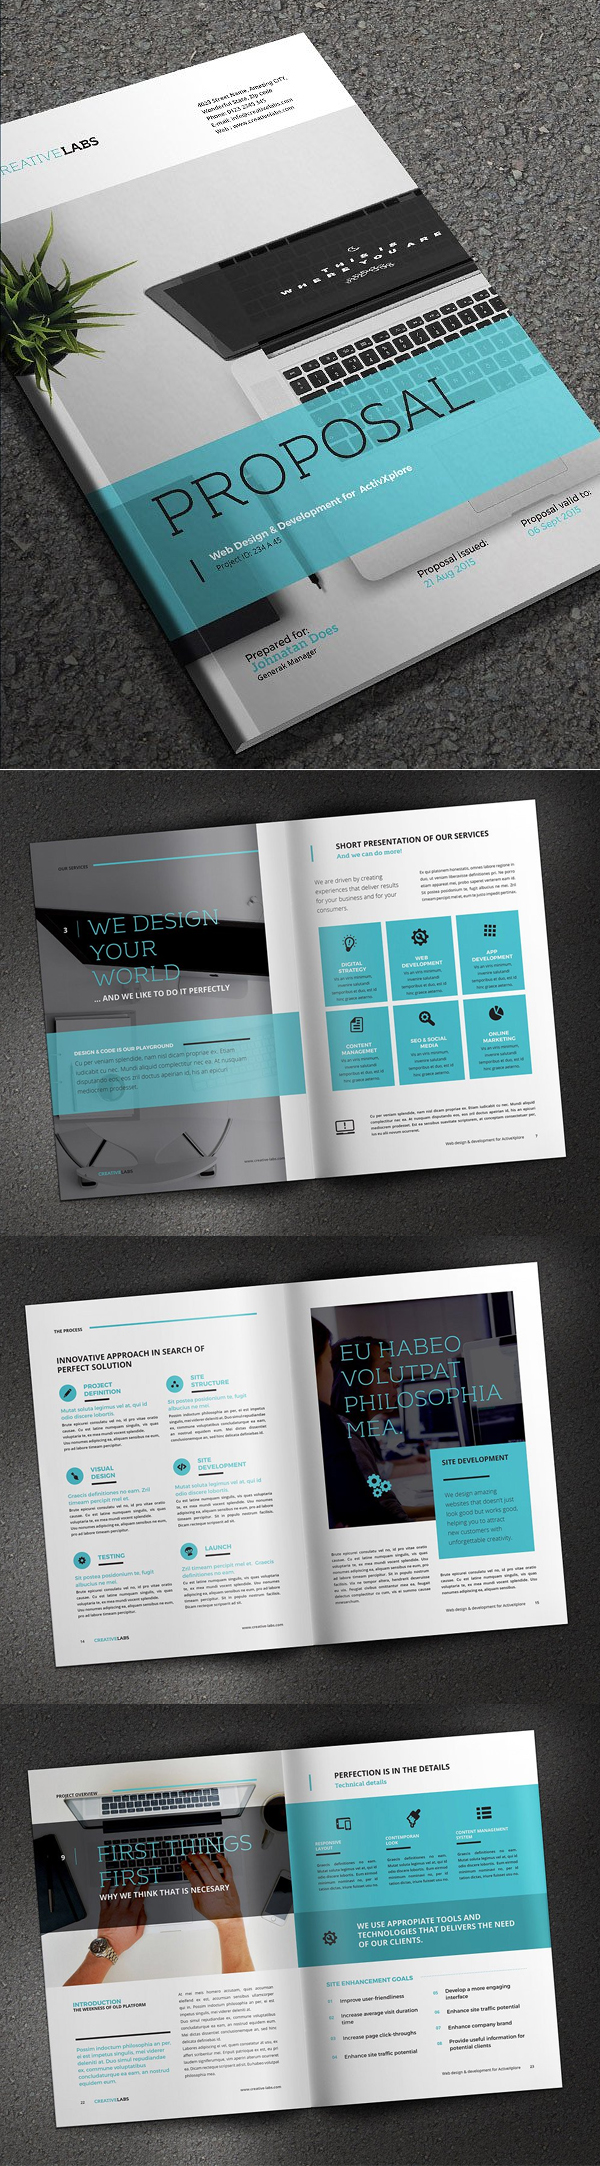 100 Professional Corporate Brochure Templates - 84